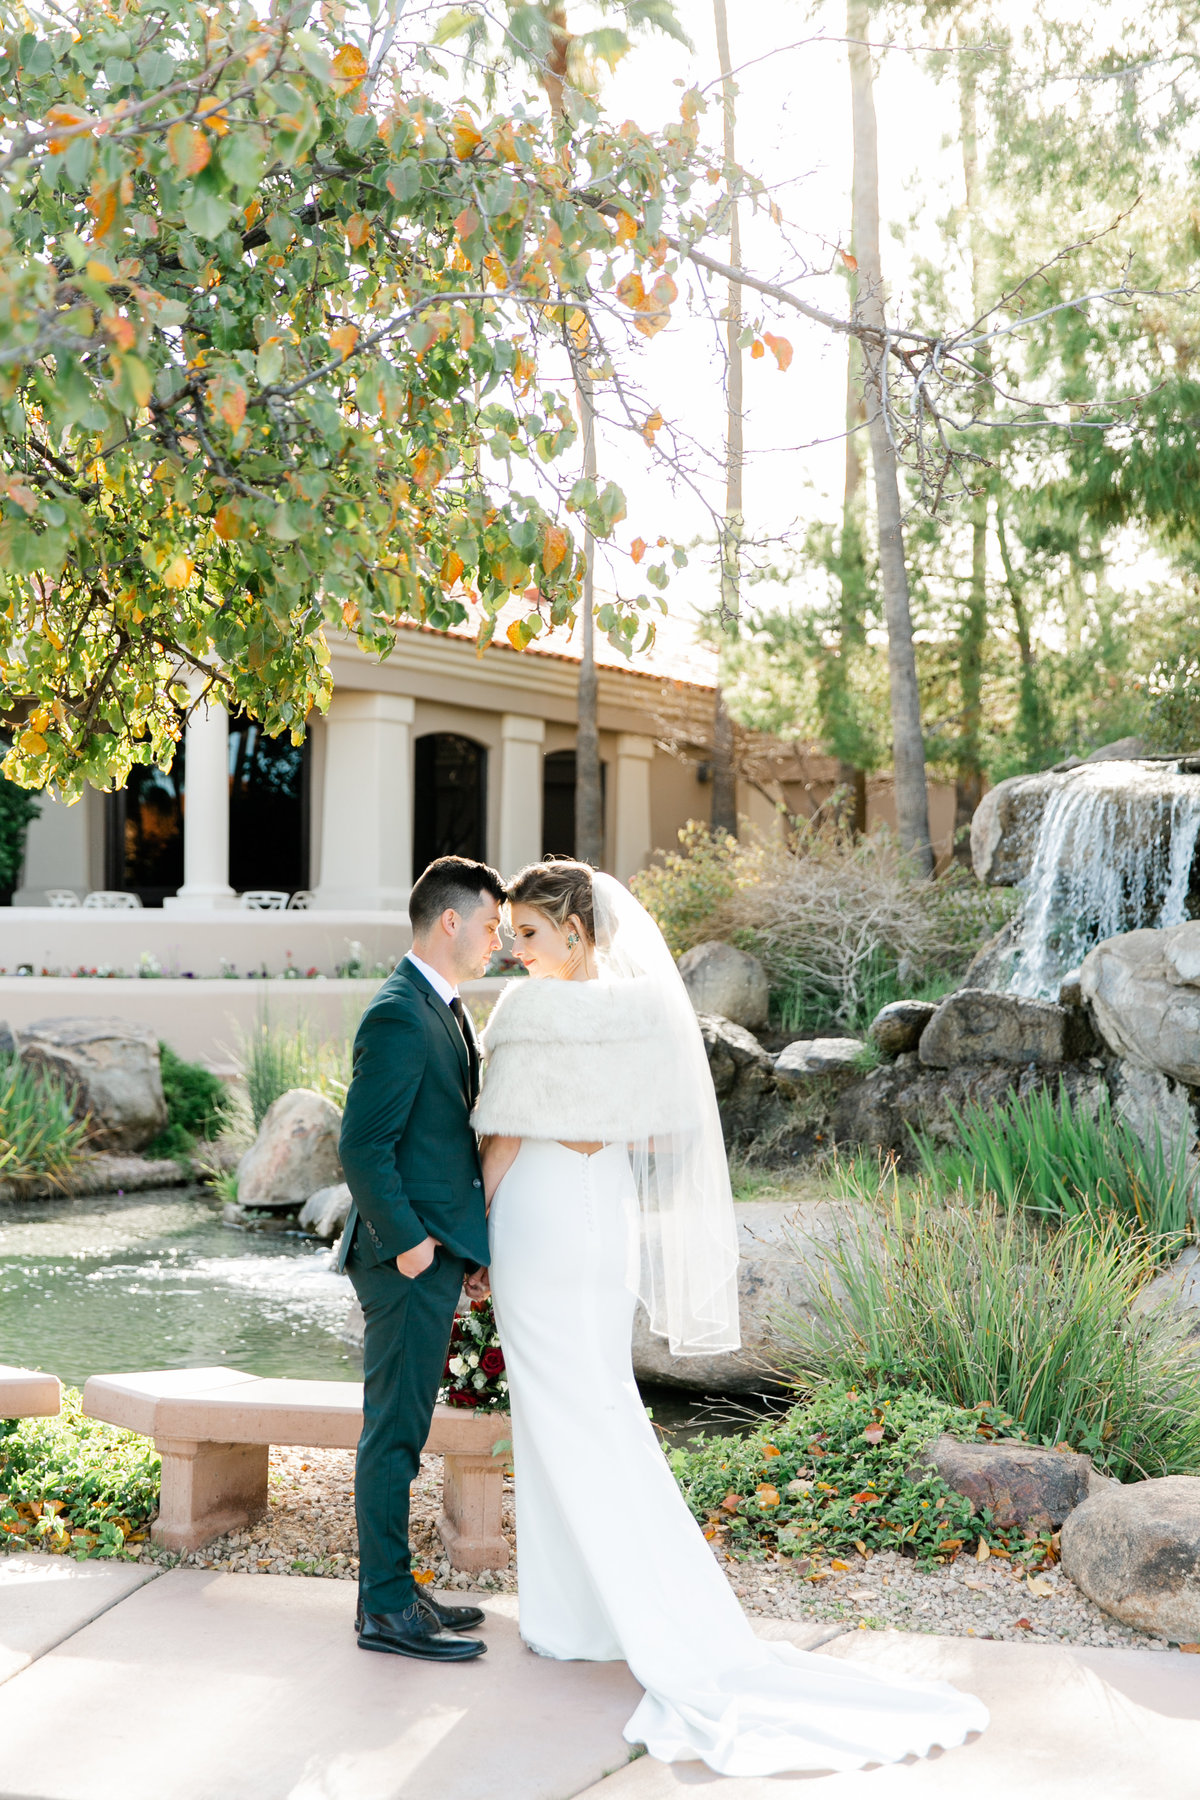 Karlie Colleen Photography - Gilbert Arizona Wedding - Val Vista Lakes - Brynne & Josh-467